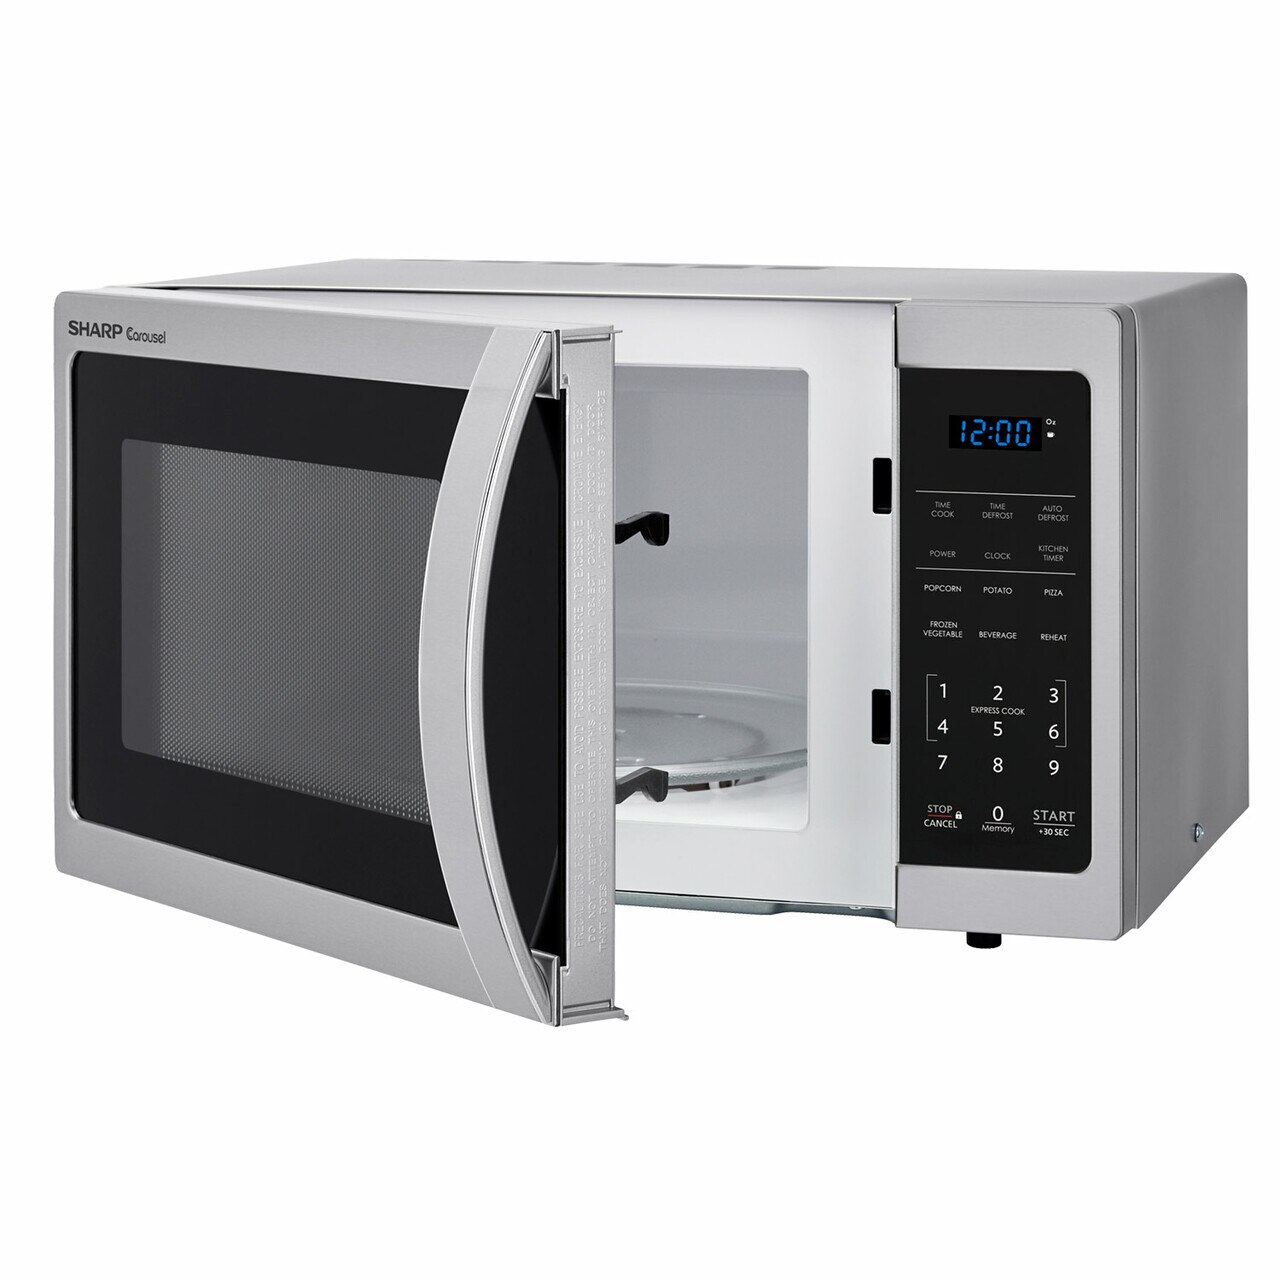 0.9 cu. ft. 900W Sharp Stainless Steel Carousel Countertop Microwave (SMC0912BS) – left angle view with door open